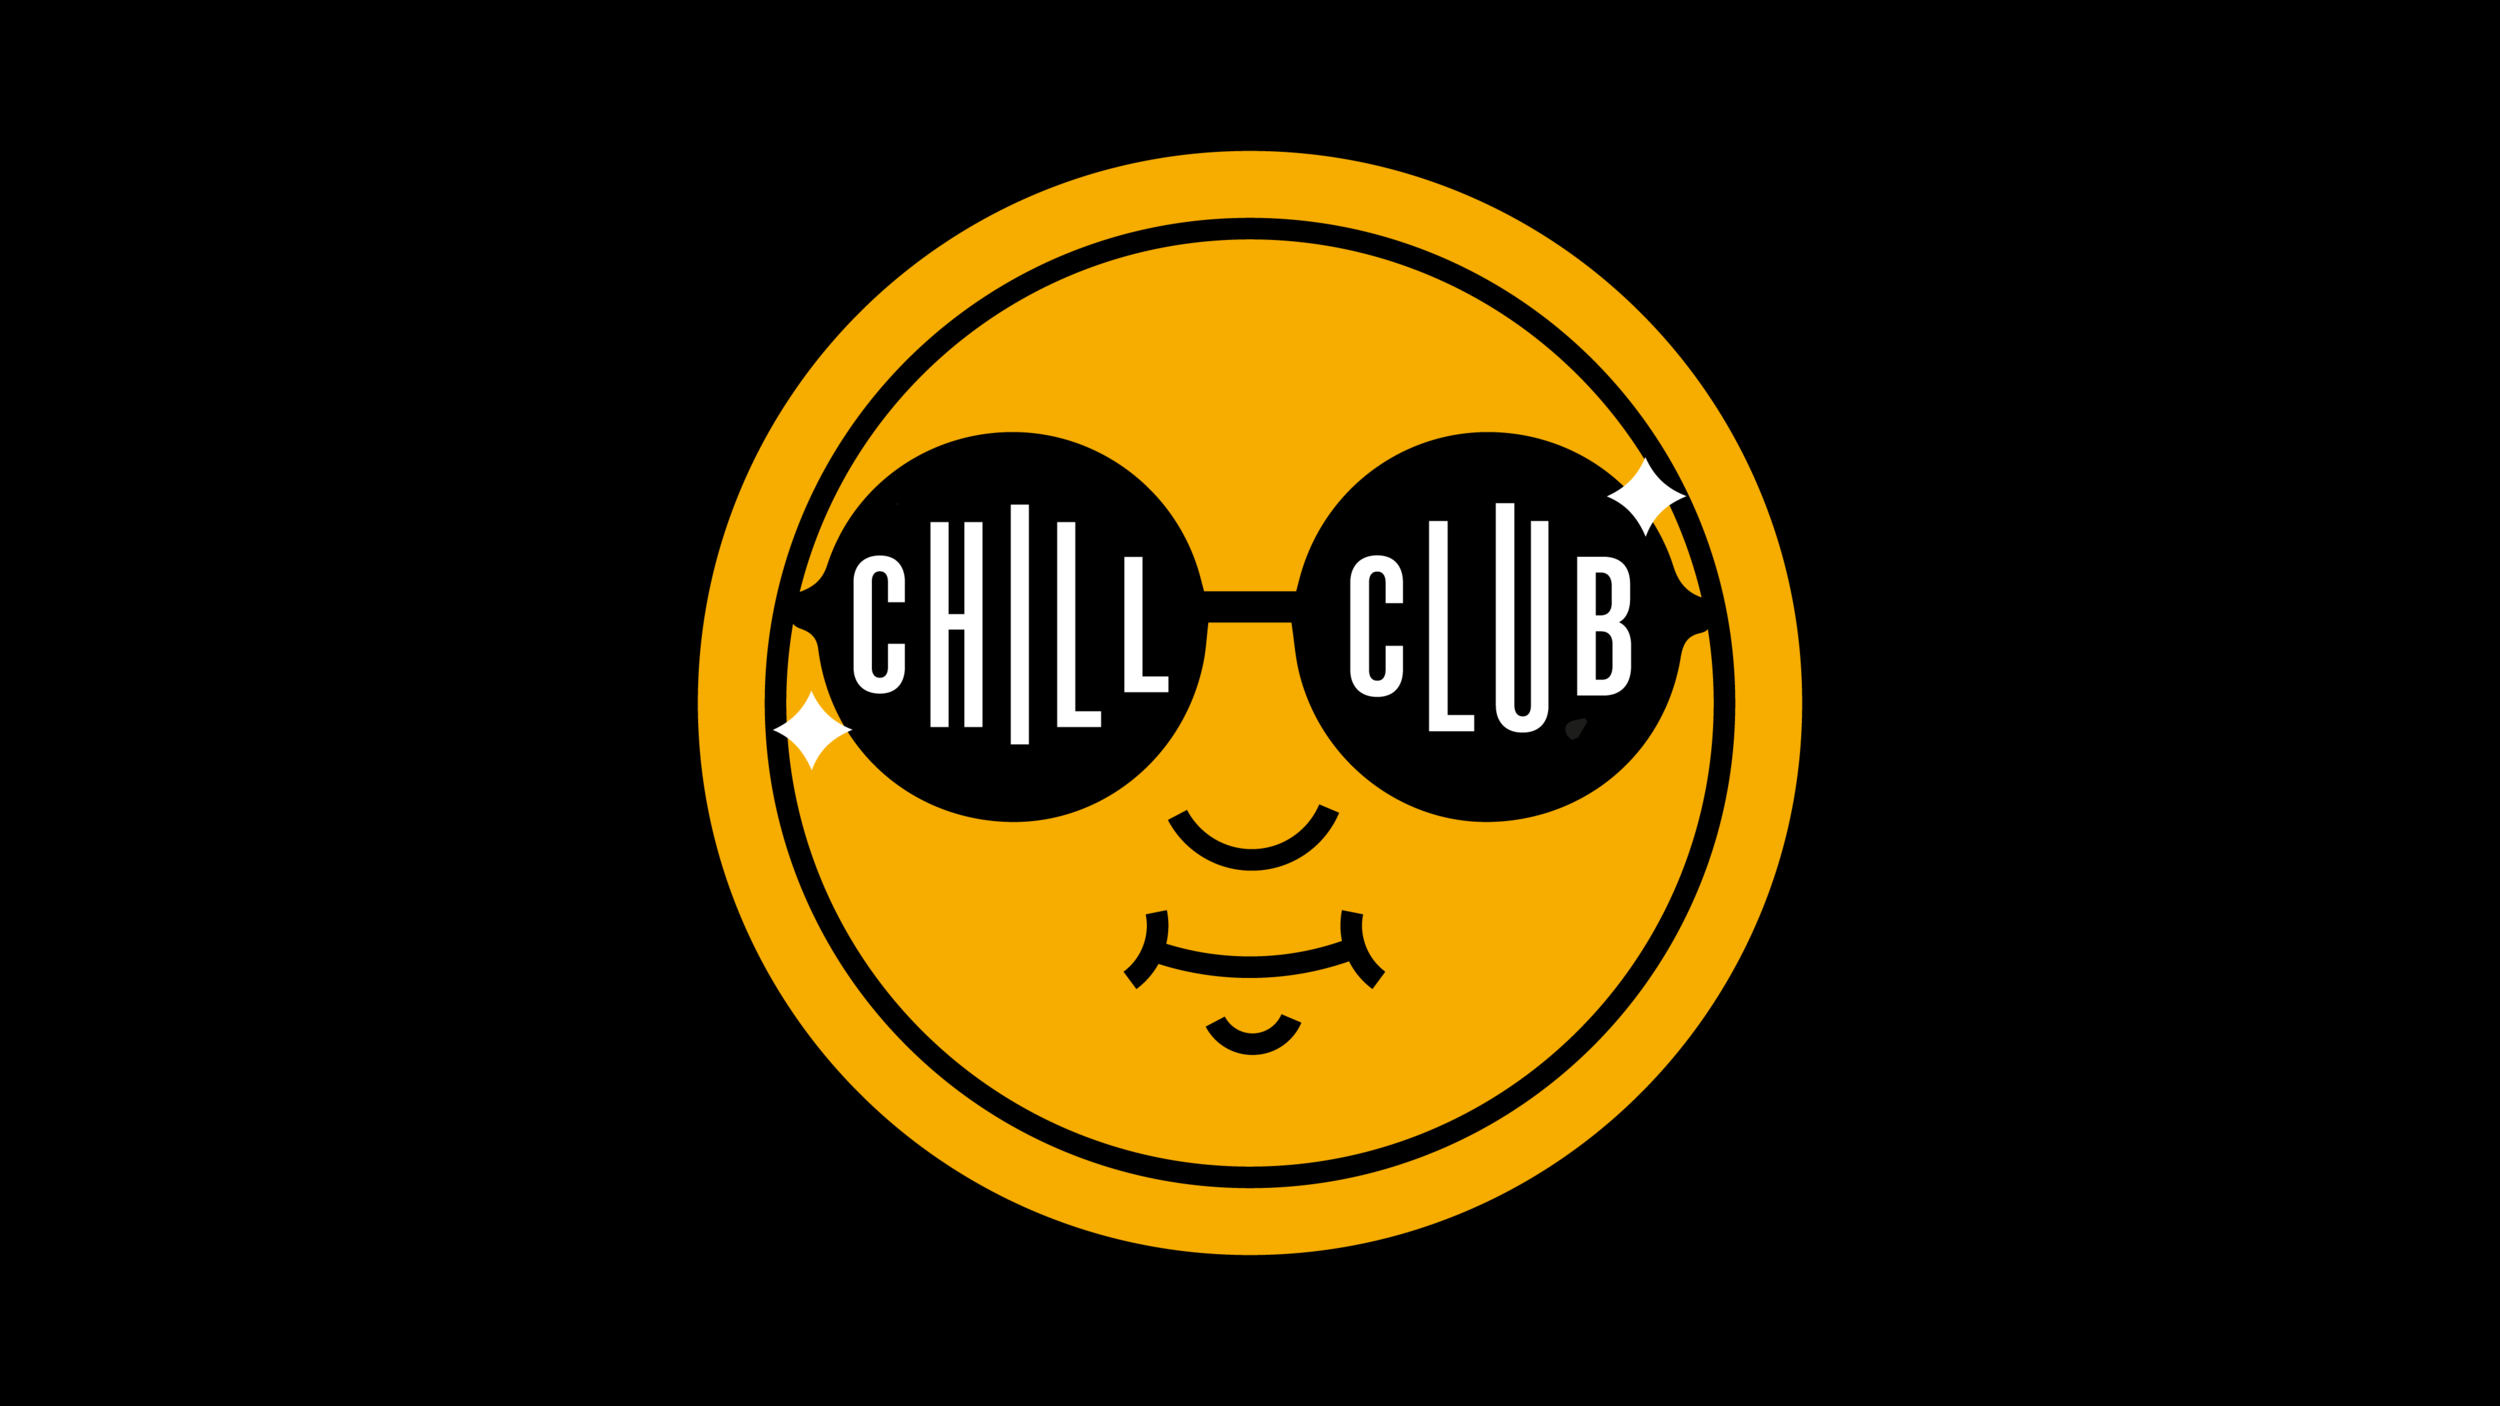 CHILL CLUB-01.png